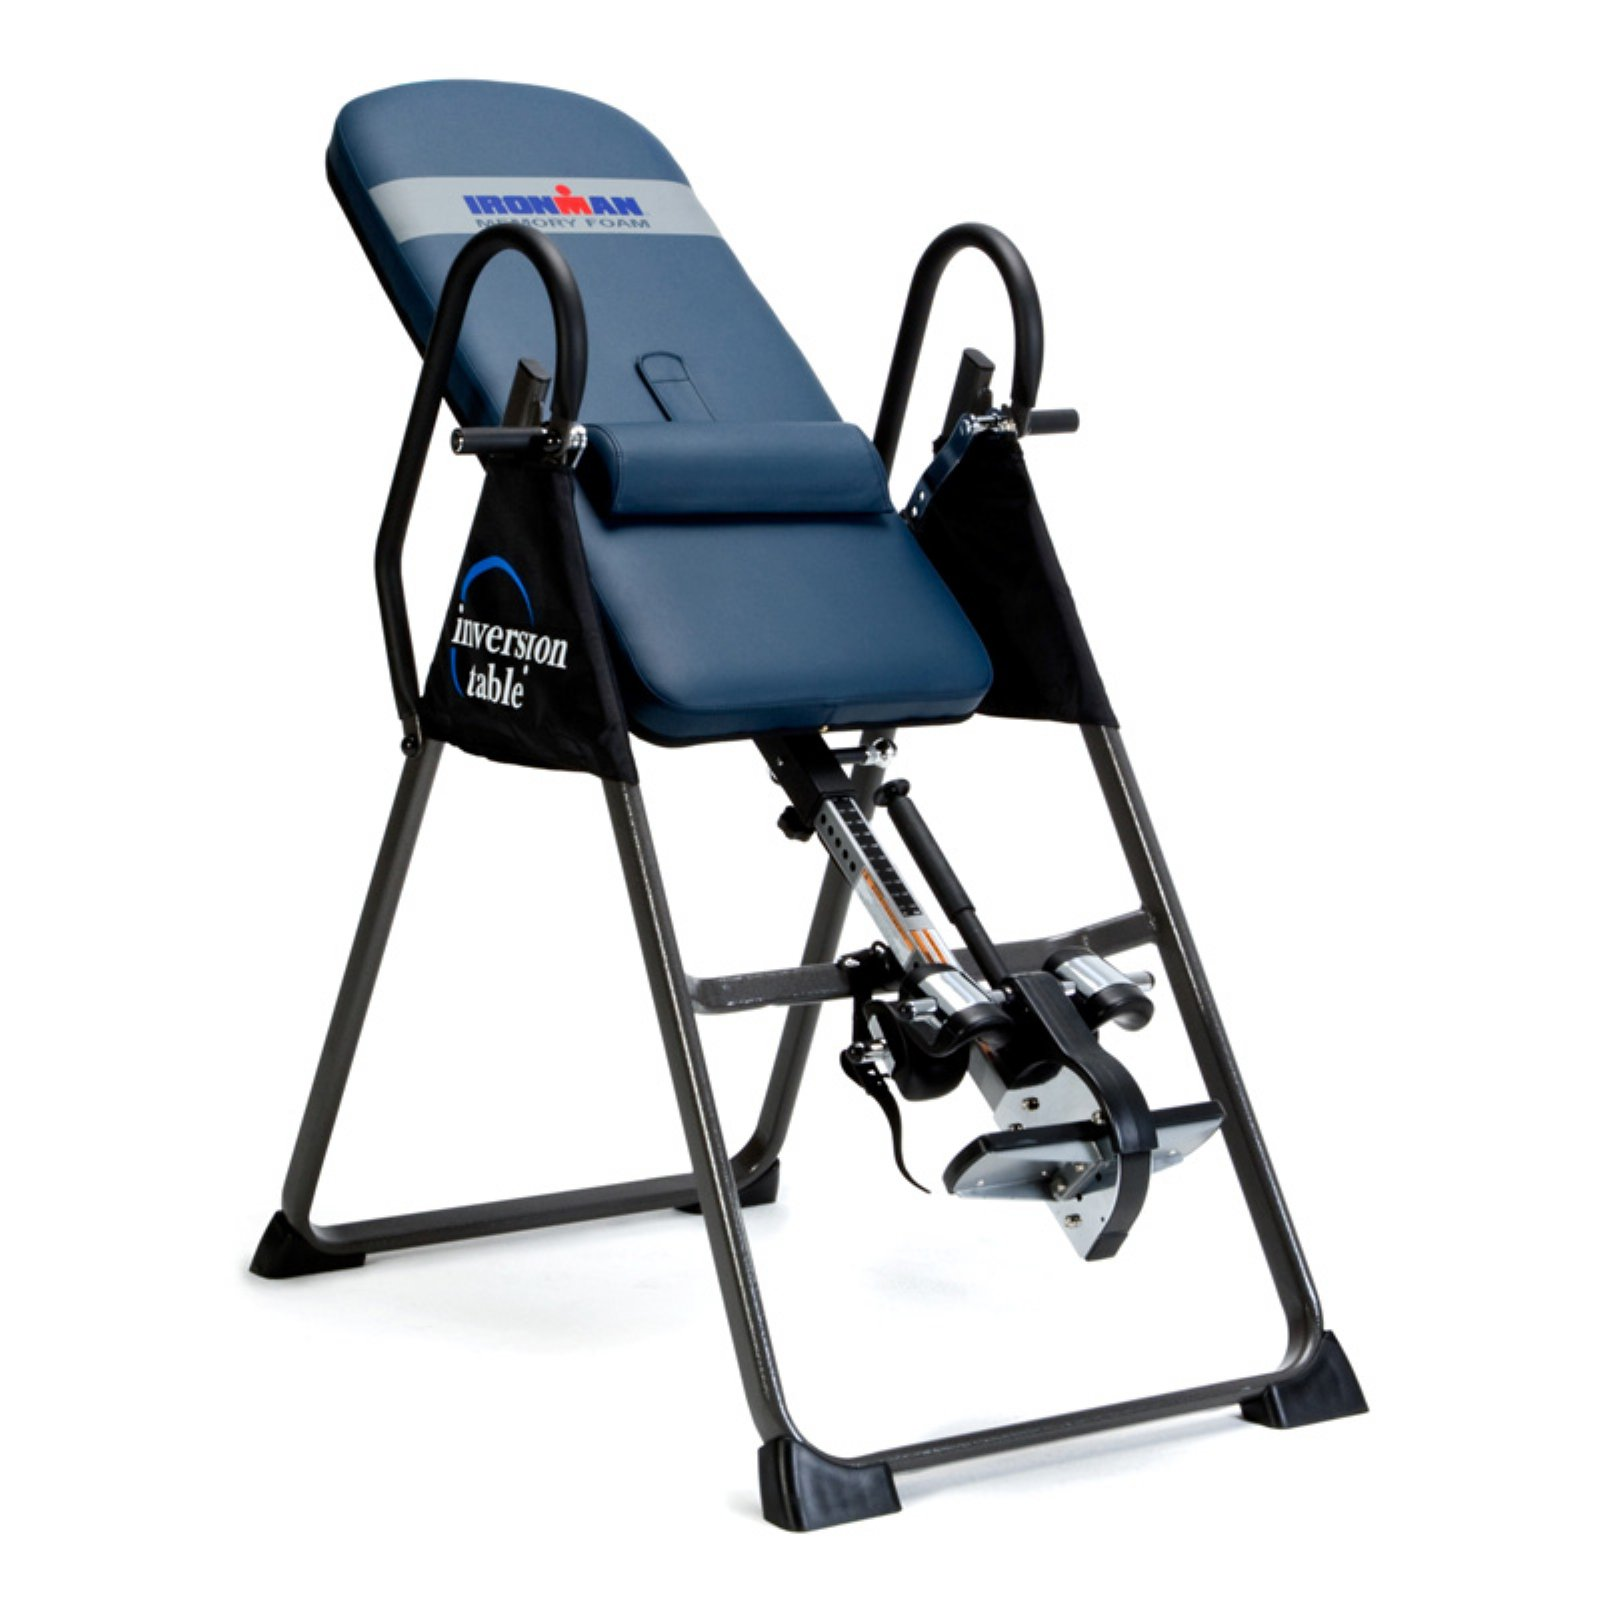 Table D Inversion Occasion Ironman Gravity 4000 Highest Weight Capacity Inversion Table